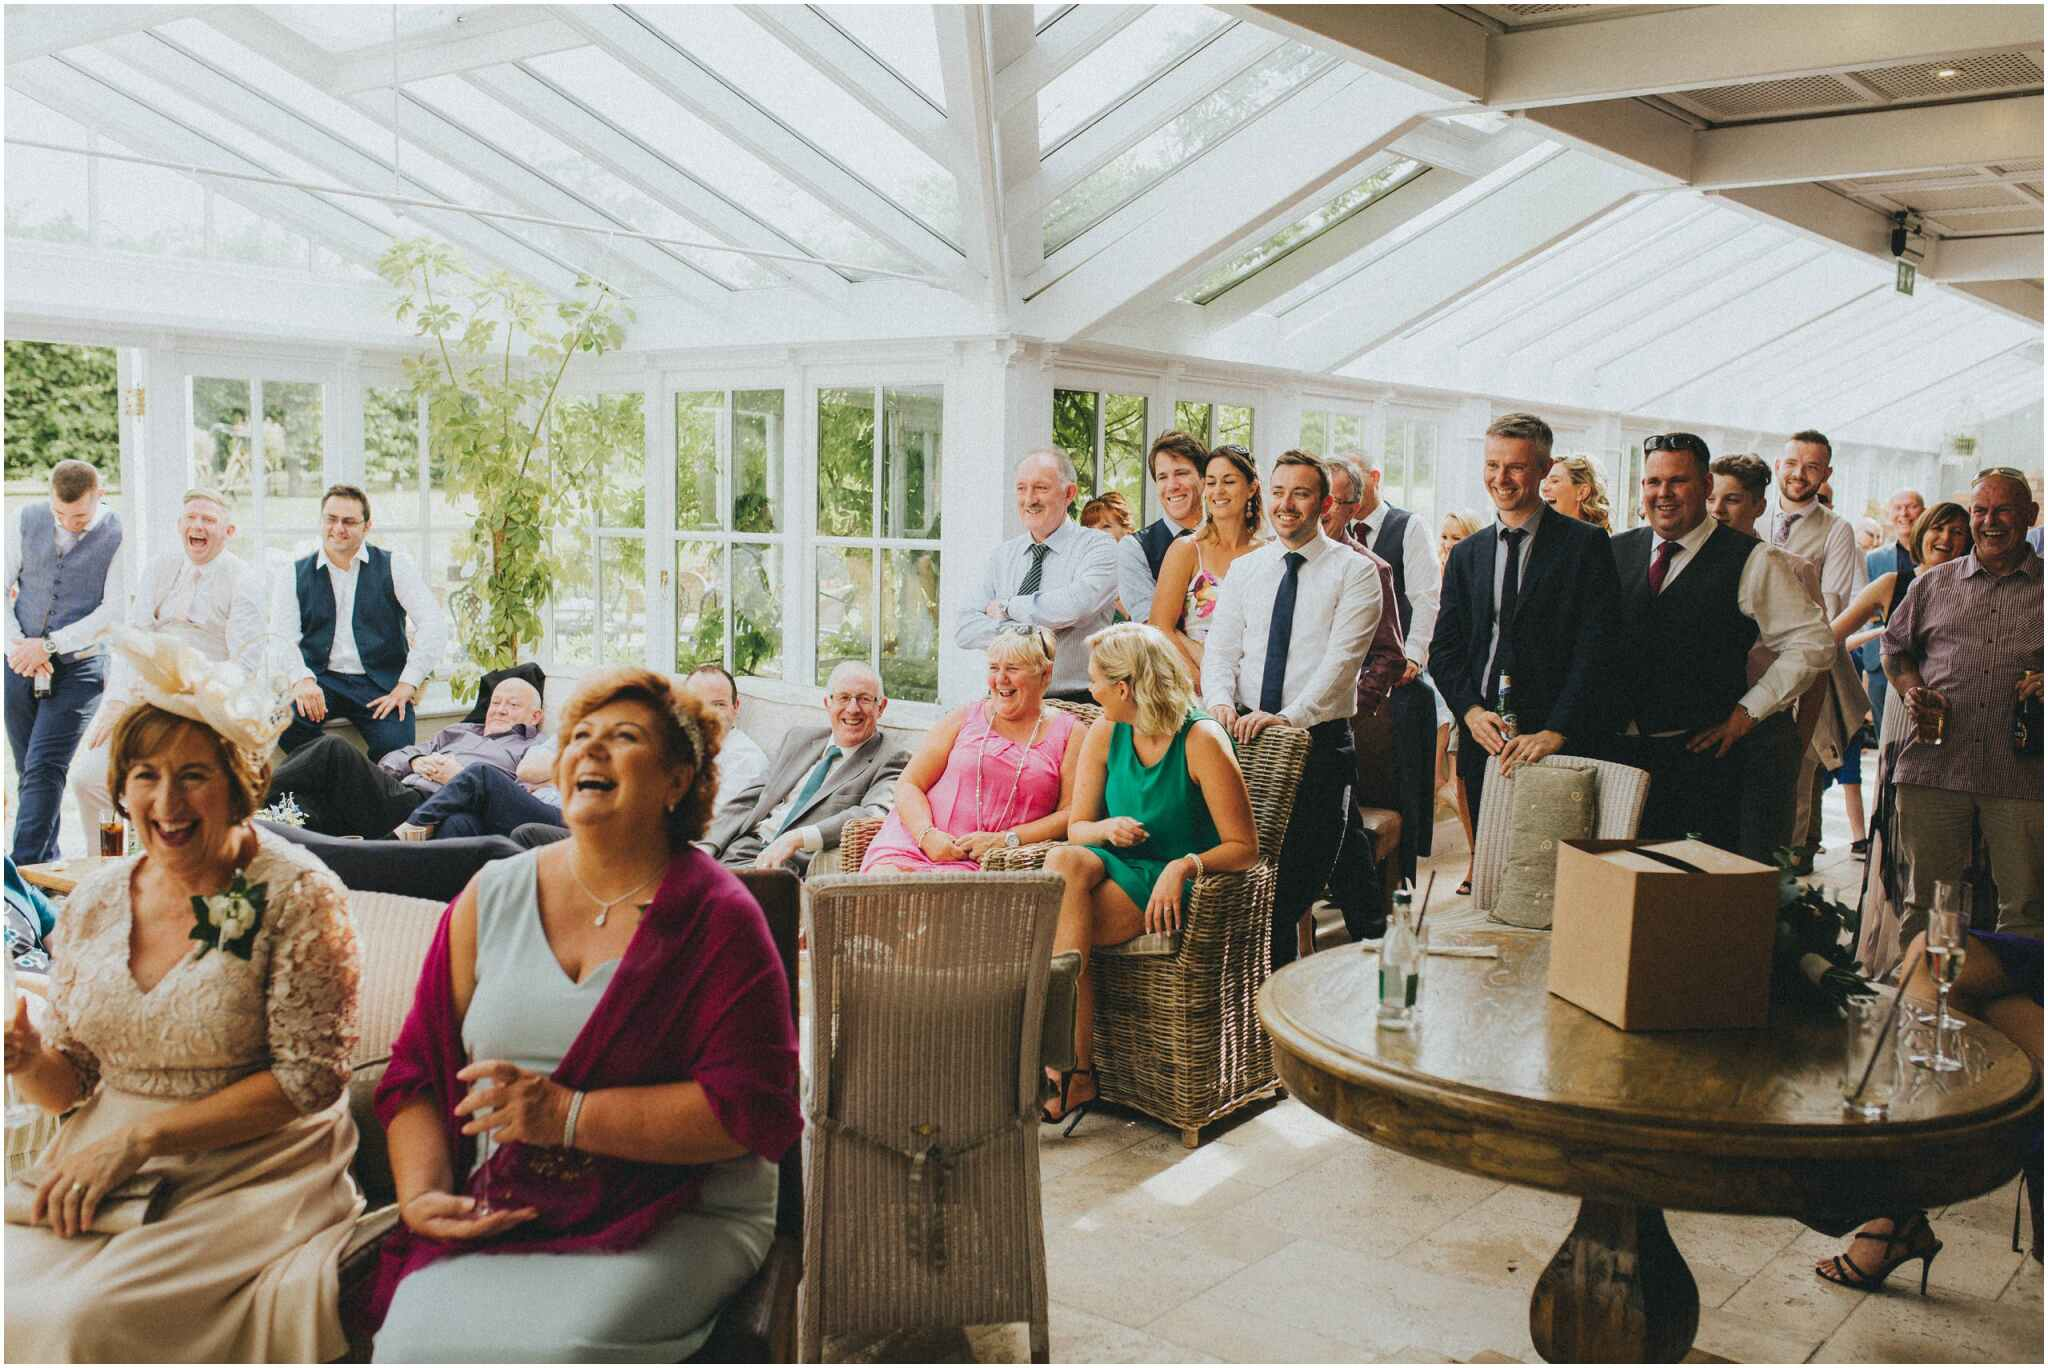 ballymagarvey village wedding 00115 - Fun and Relaxed wedding and elopement photography in Ireland, perfect for adventurous and outdoorsy couples